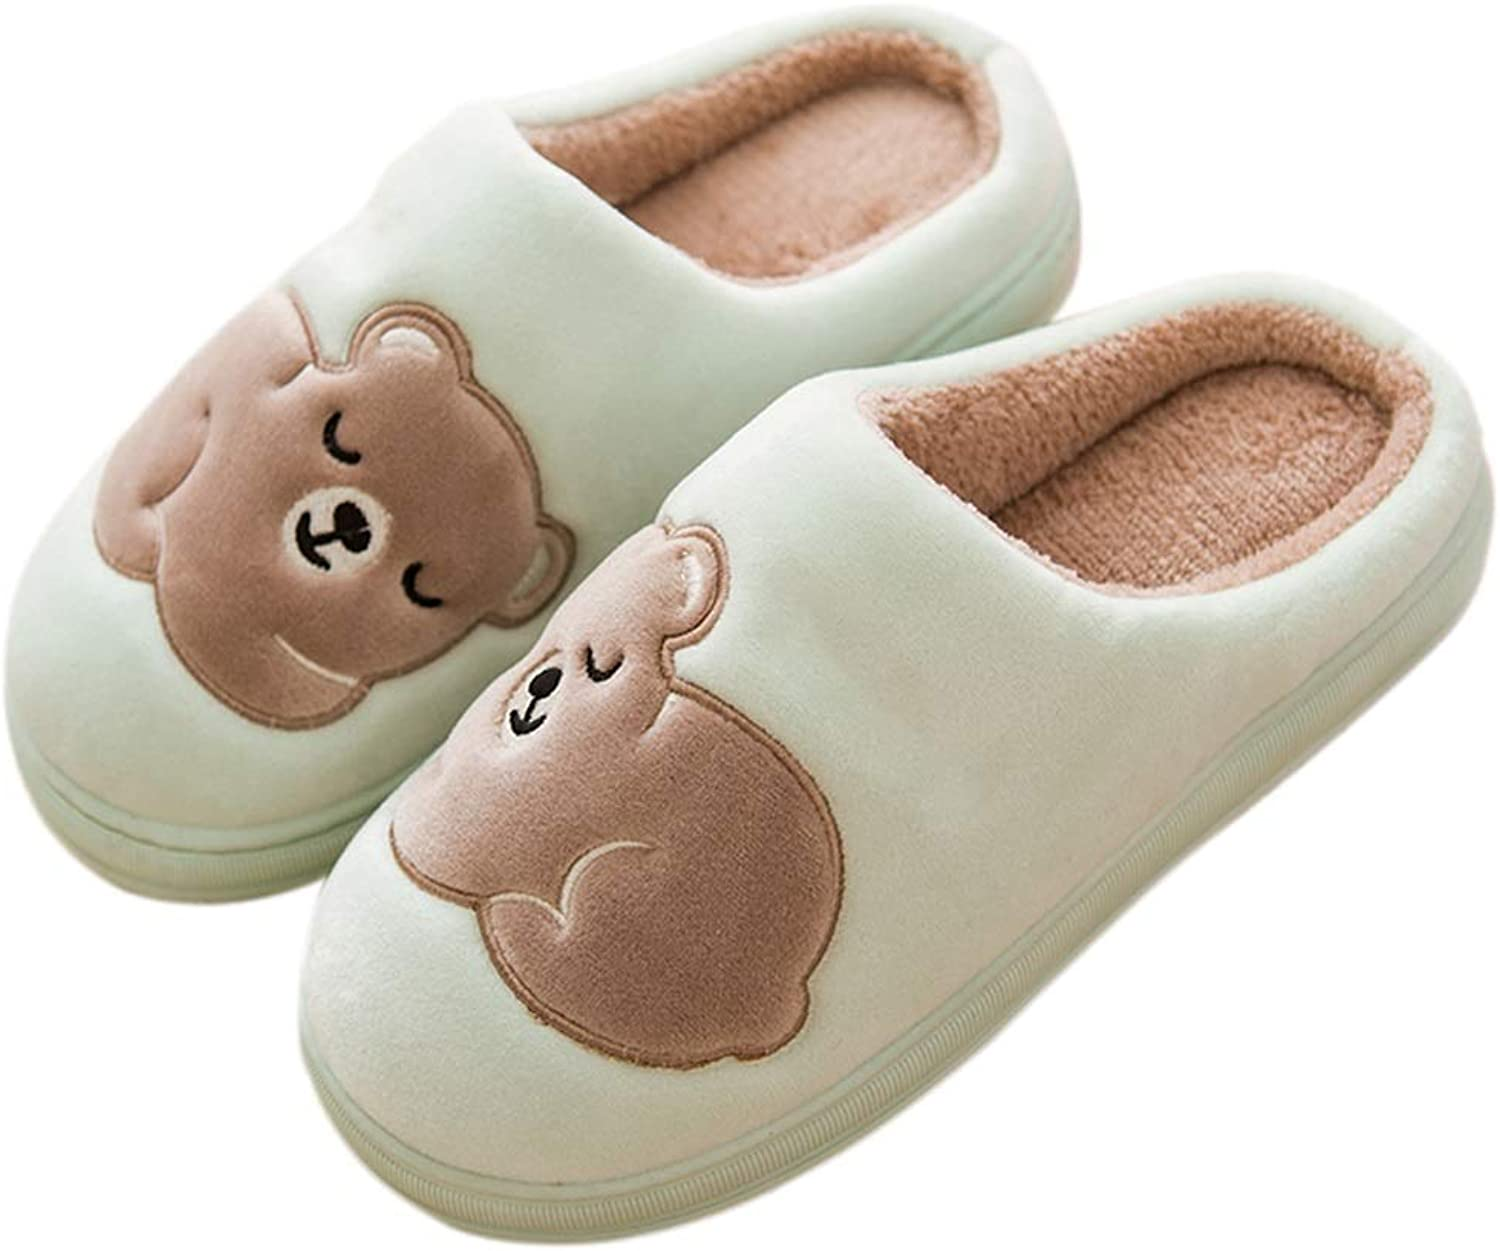 HUYP Green Female Cotton Slippers Simple Autumn and Winter Skid Home Indoor Cute (Size   6 US)